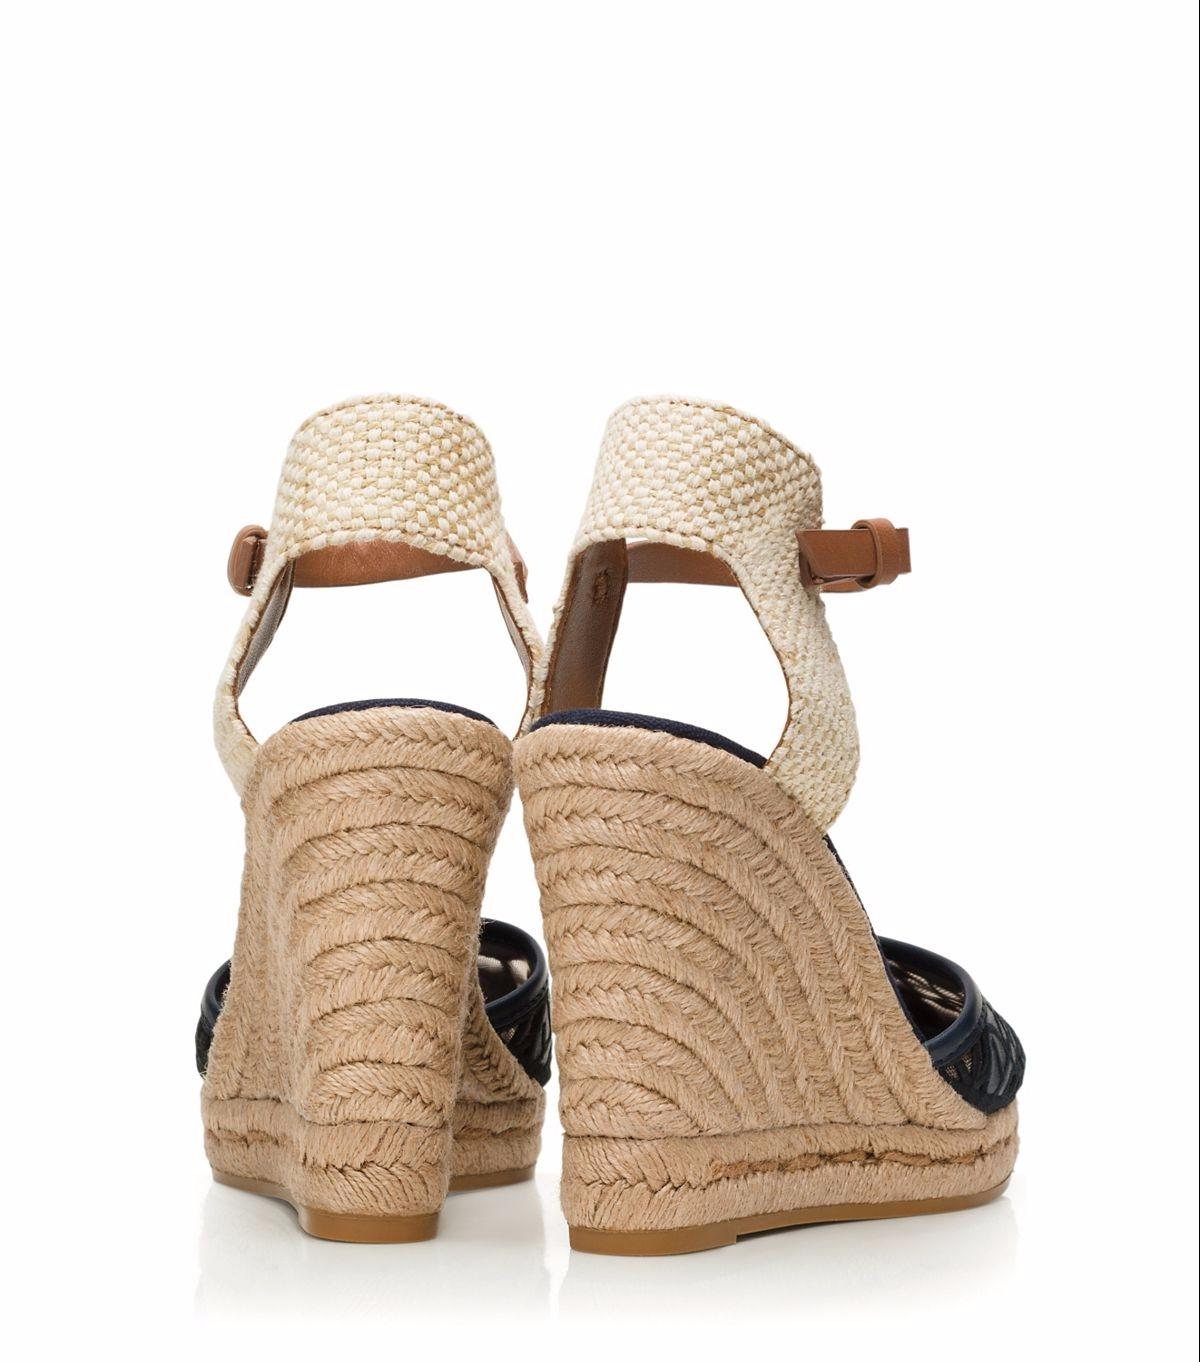 Tory Burch 51148403 Lucia Lace Espadrille Natural Tan Size 7 Black And Navy  Wedges. 123456789